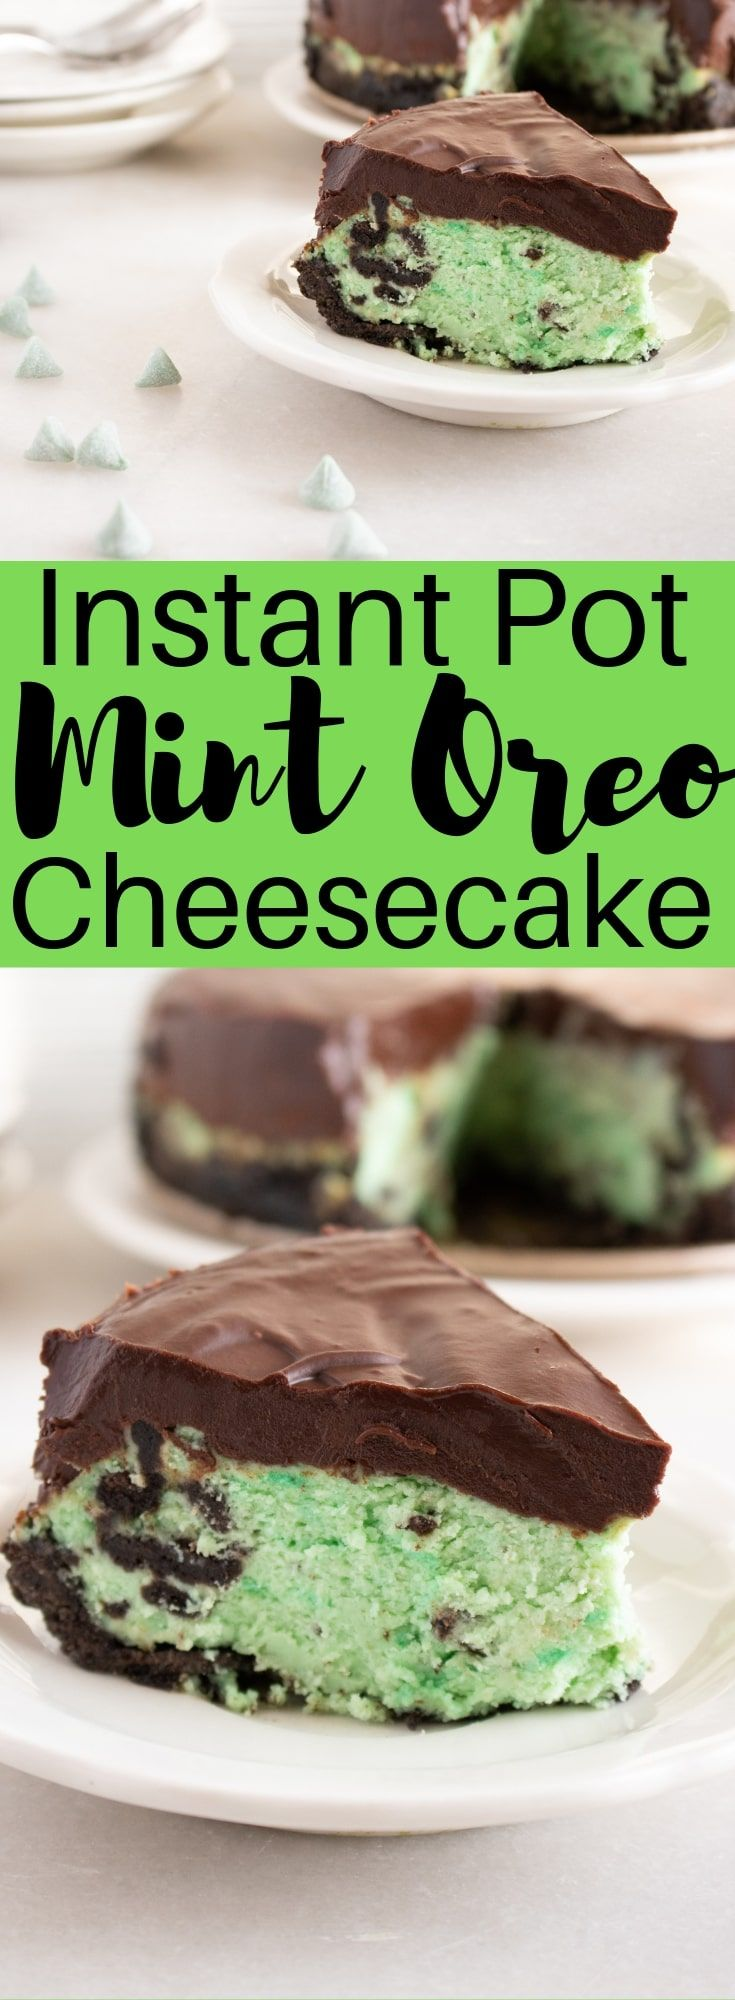 While desserts can be time consuming and difficult to create, especially cheesec…